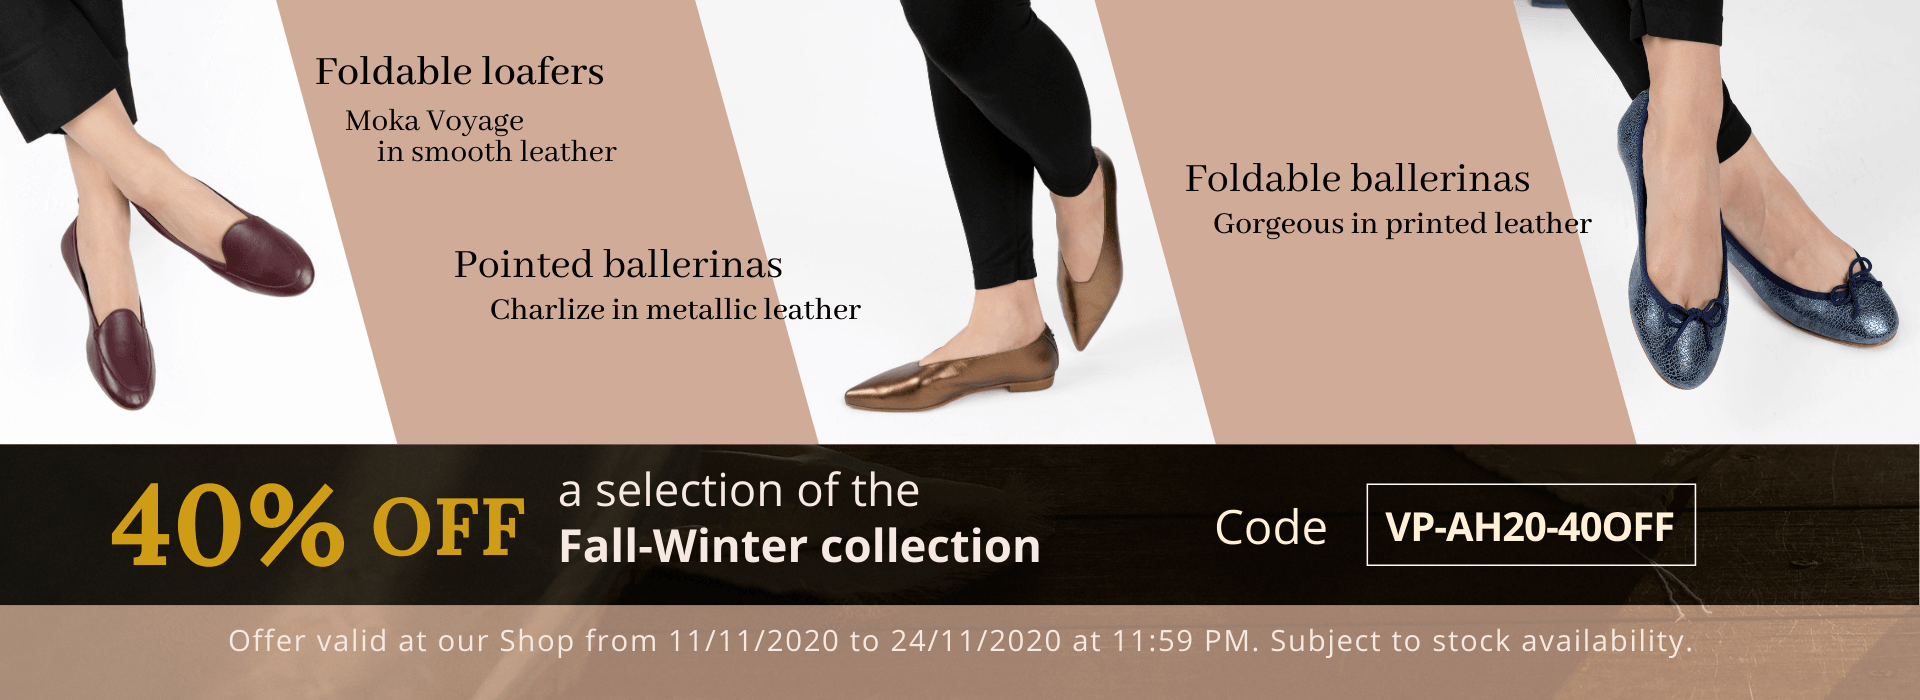 Get 40% OFF a selection of the Fall-Winter Collection